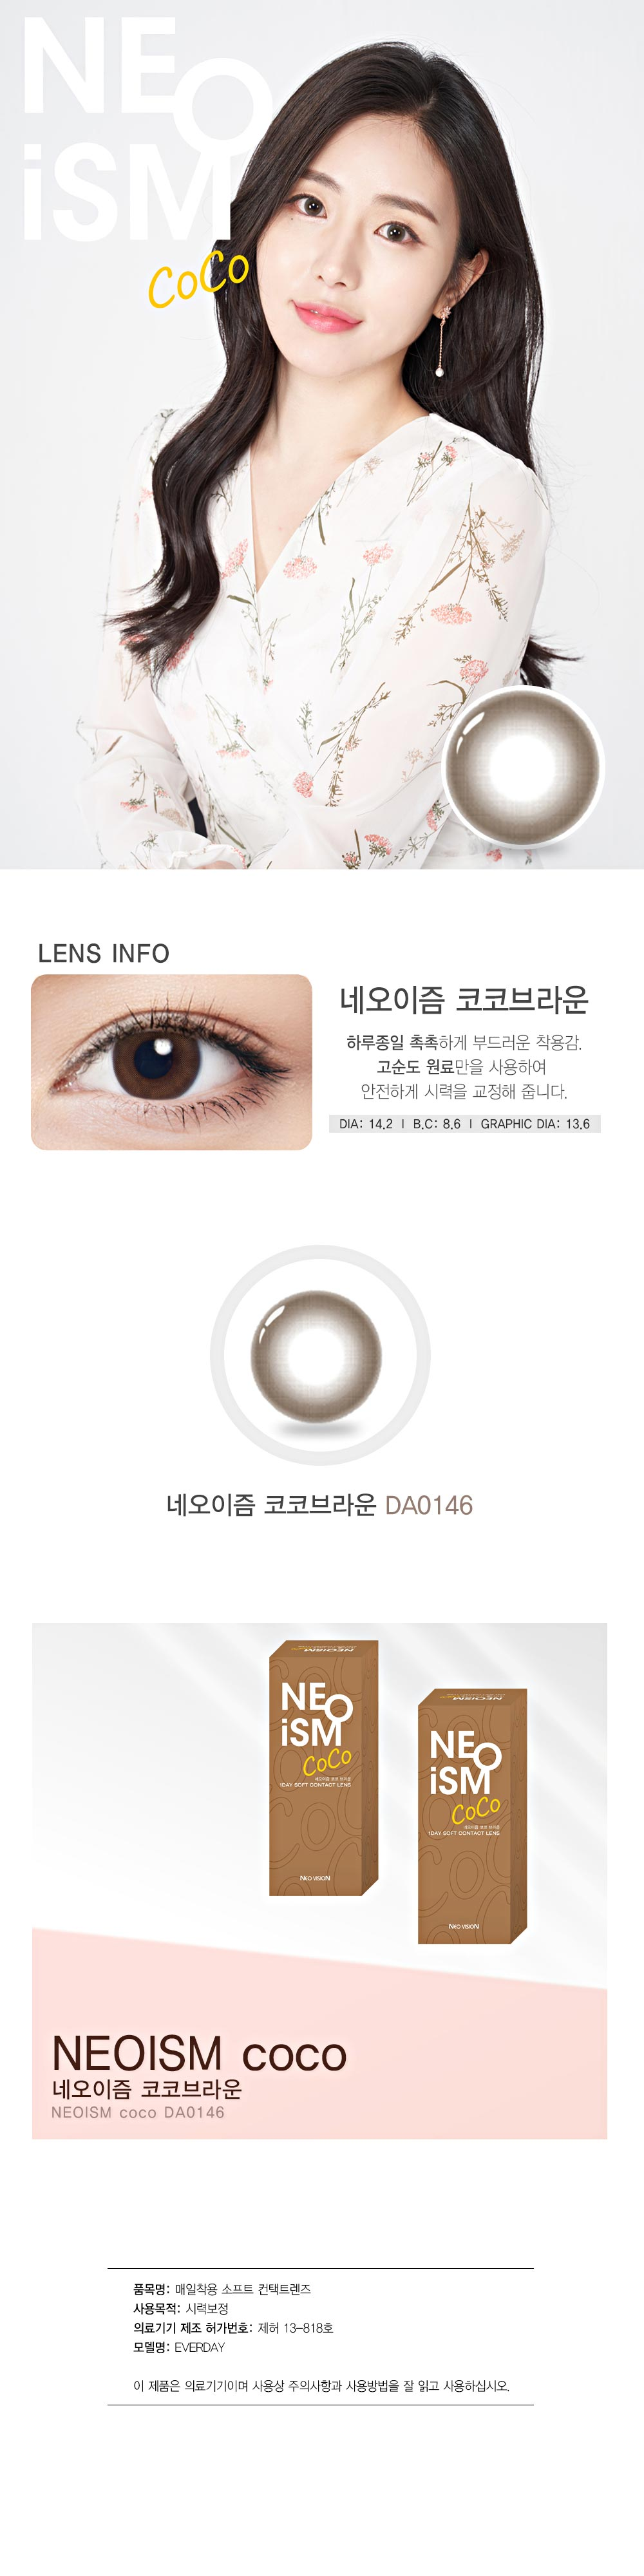 neoism-coco-brown-colored-contact-lenses-1.jpg